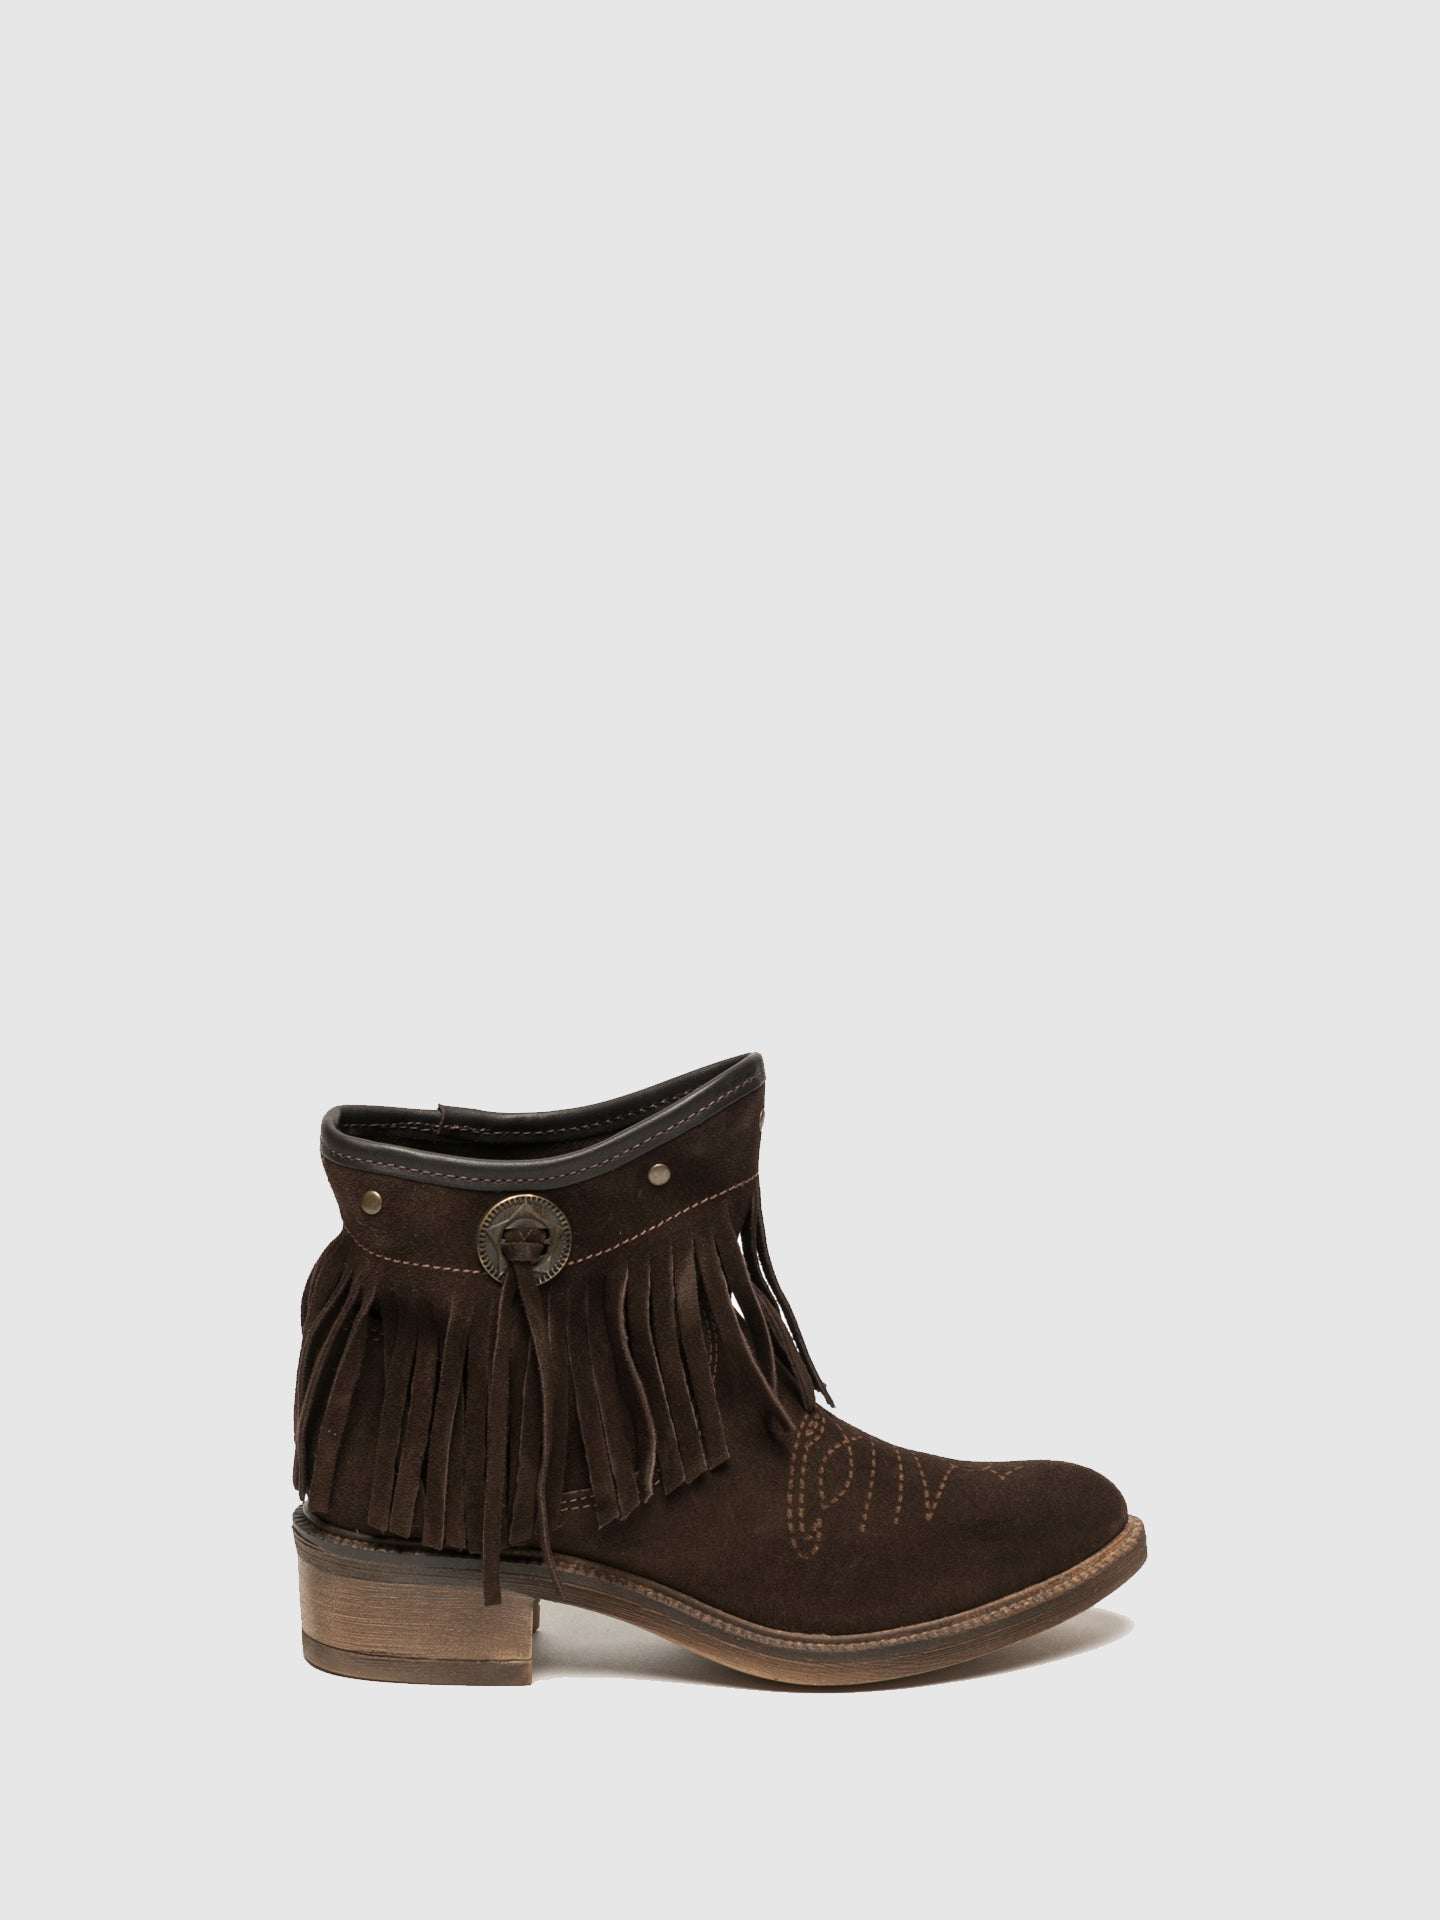 Foreva Brown Fringed Ankle Boots